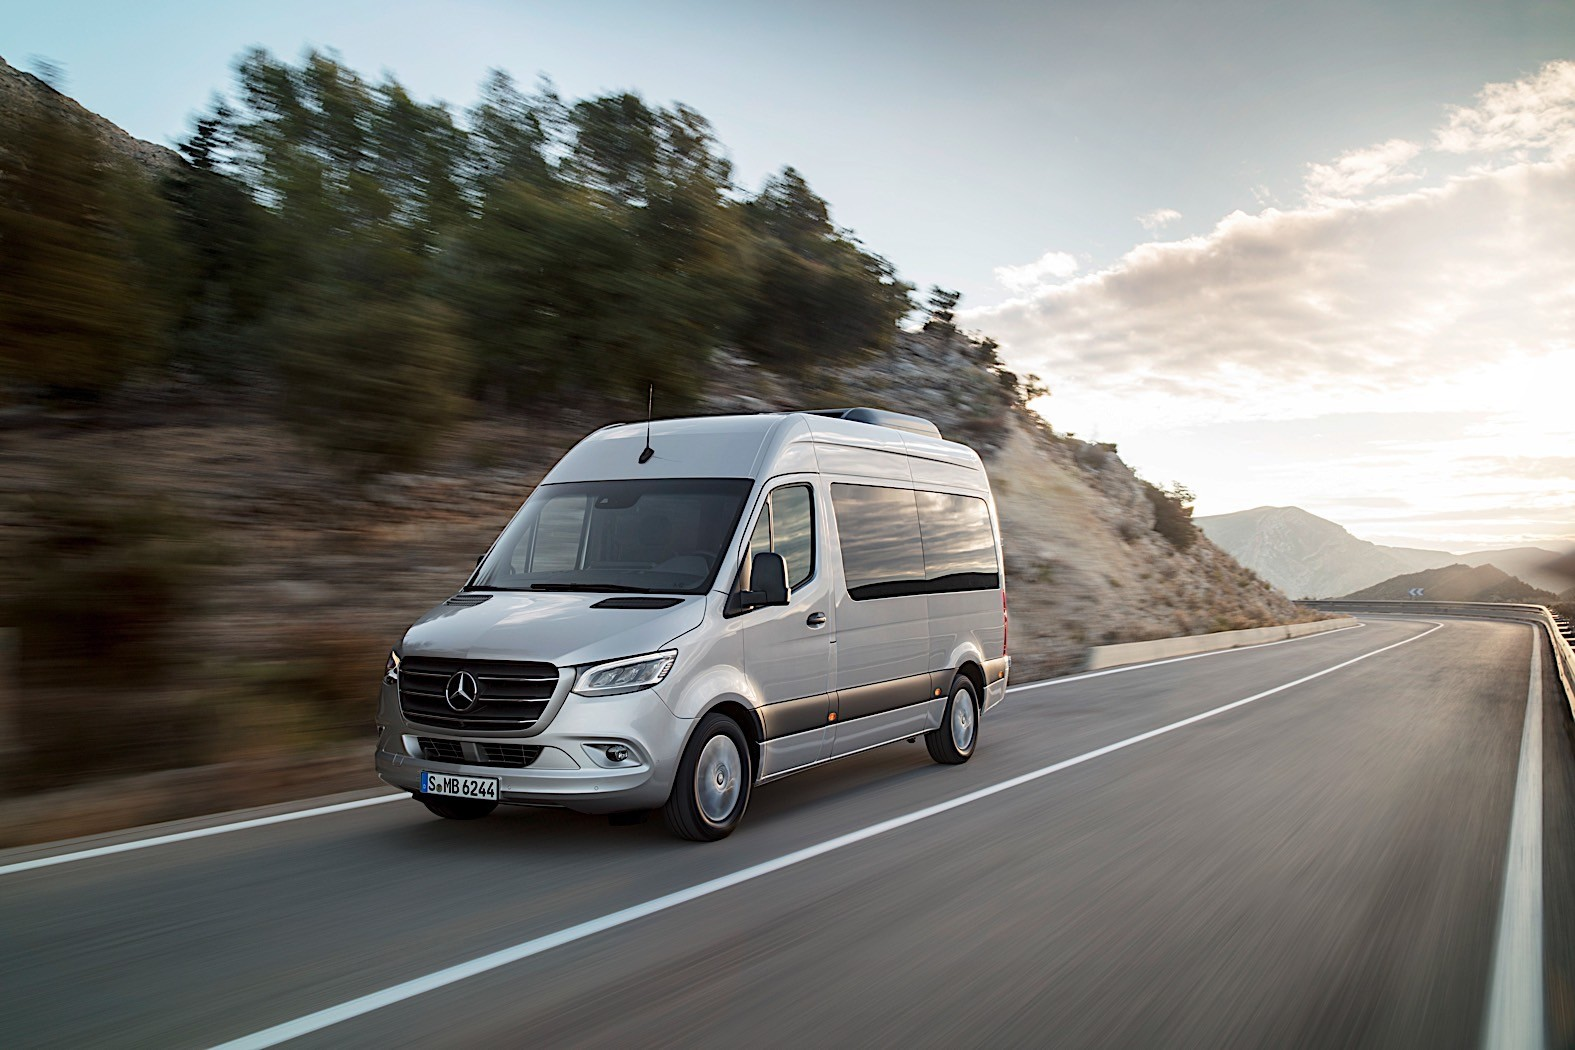 Mercedes benz sprinter based rv reviewed by autoblog for Mercedes benz van